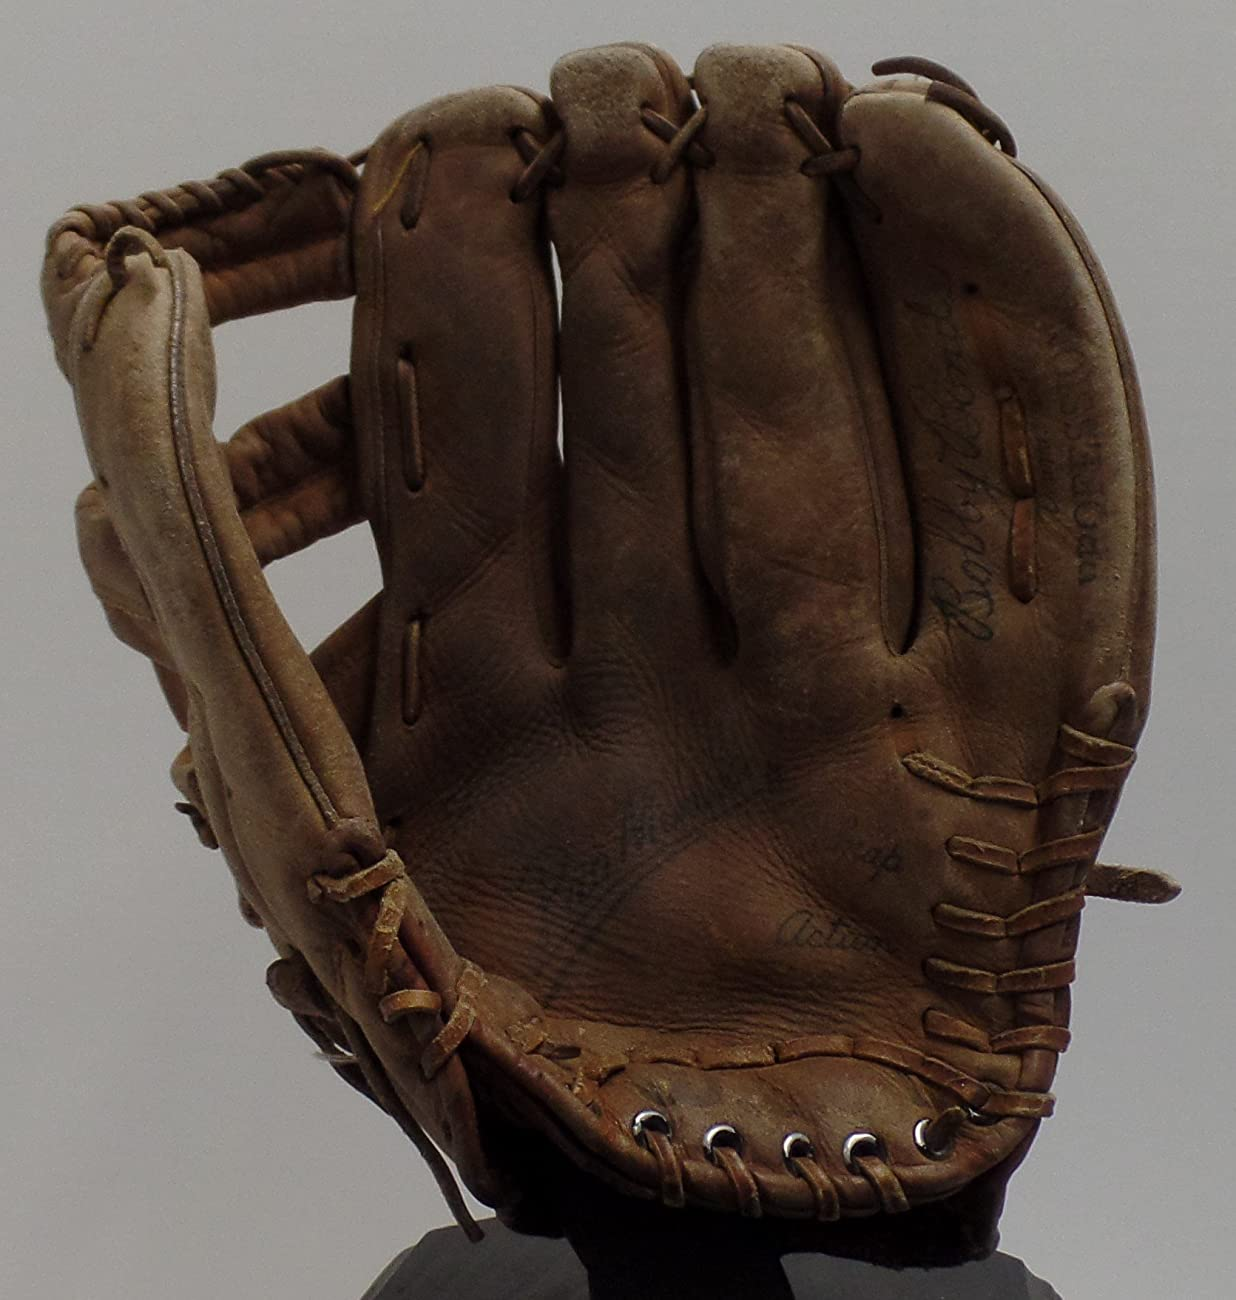 Vintage Bobby Bonds Pro Style Baseball Glove - Wilson Right Hand Thrower (Great for Display - Could Be Used Everyday) Free Shipping & Tracking 0